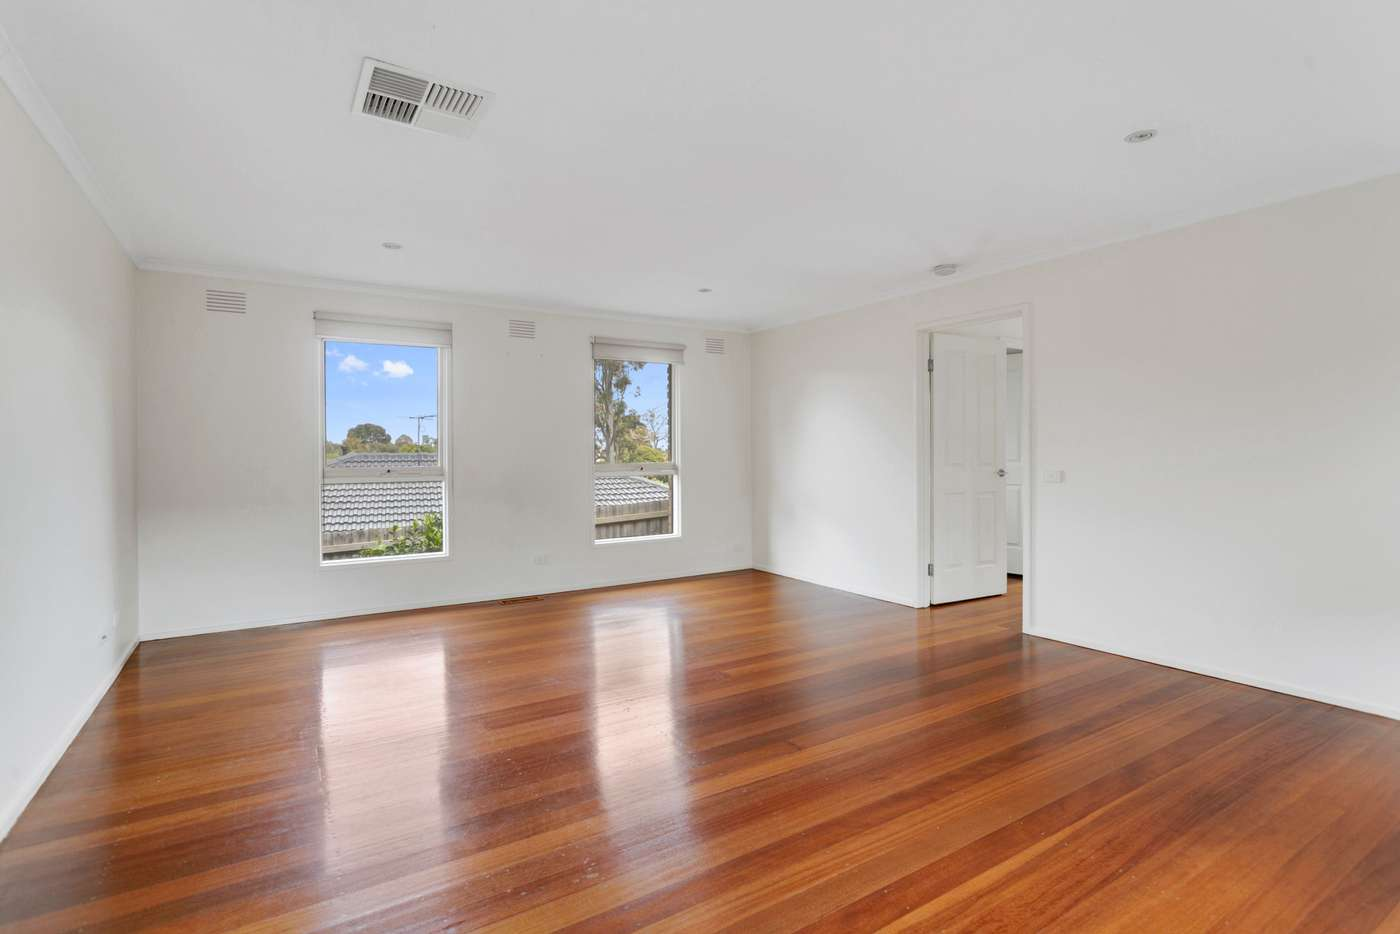 Fifth view of Homely unit listing, 24B Beech Street, Langwarrin VIC 3910